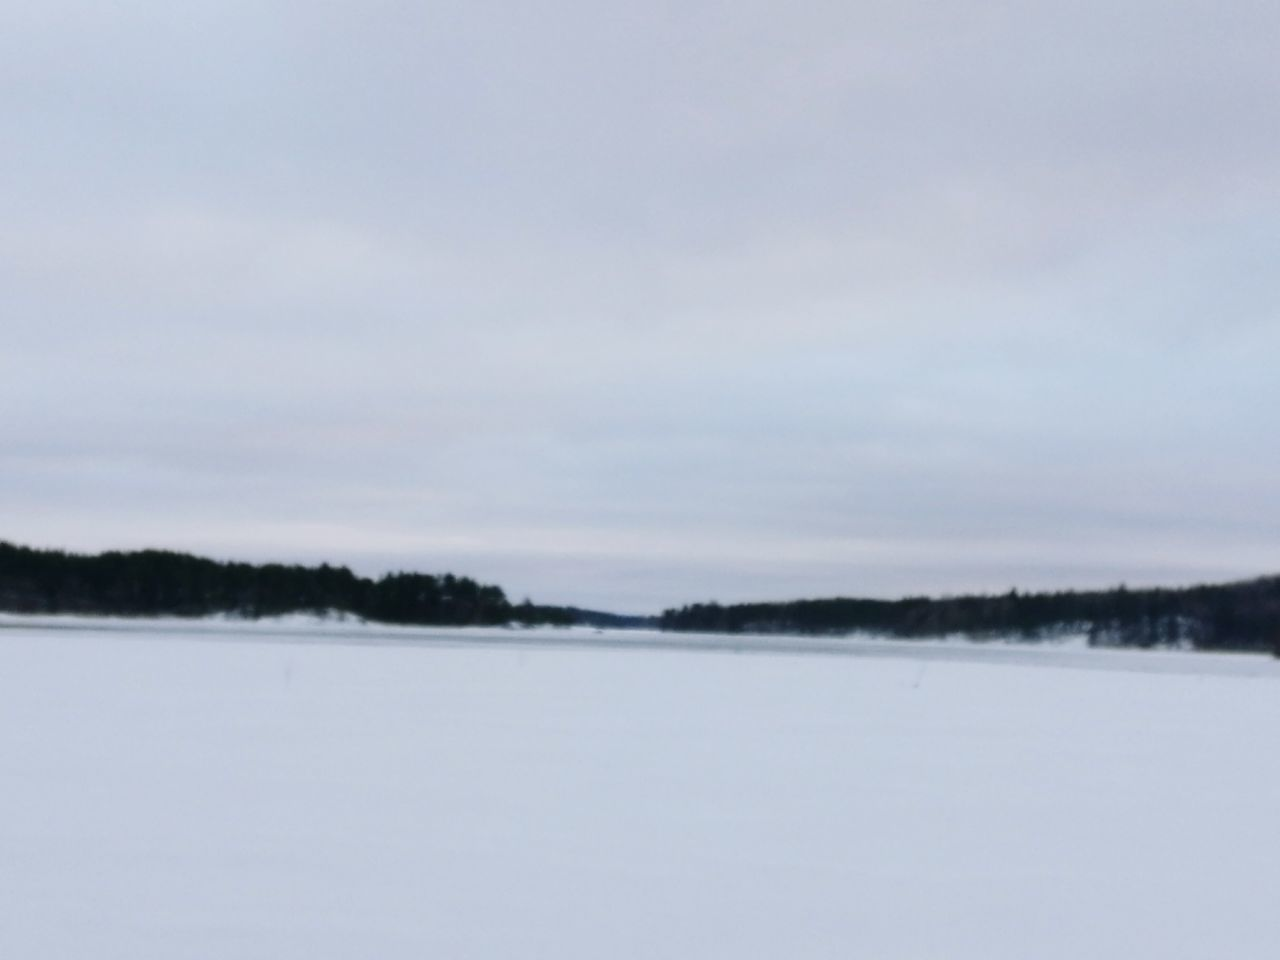 Cold Temperature Tranquil Scene Snow Nature Landscape Beauty In Nature No People Winter Tree Scenics Outdoors Lake Tranquility Water Sky Cloud - Sky Snowing Day Finland Savonlinna Finland Finlande Finland Savonlinna Finland_photolovers Finland♥ Finland Finlandlovers Sami Koulu Savonlinna Miles Away